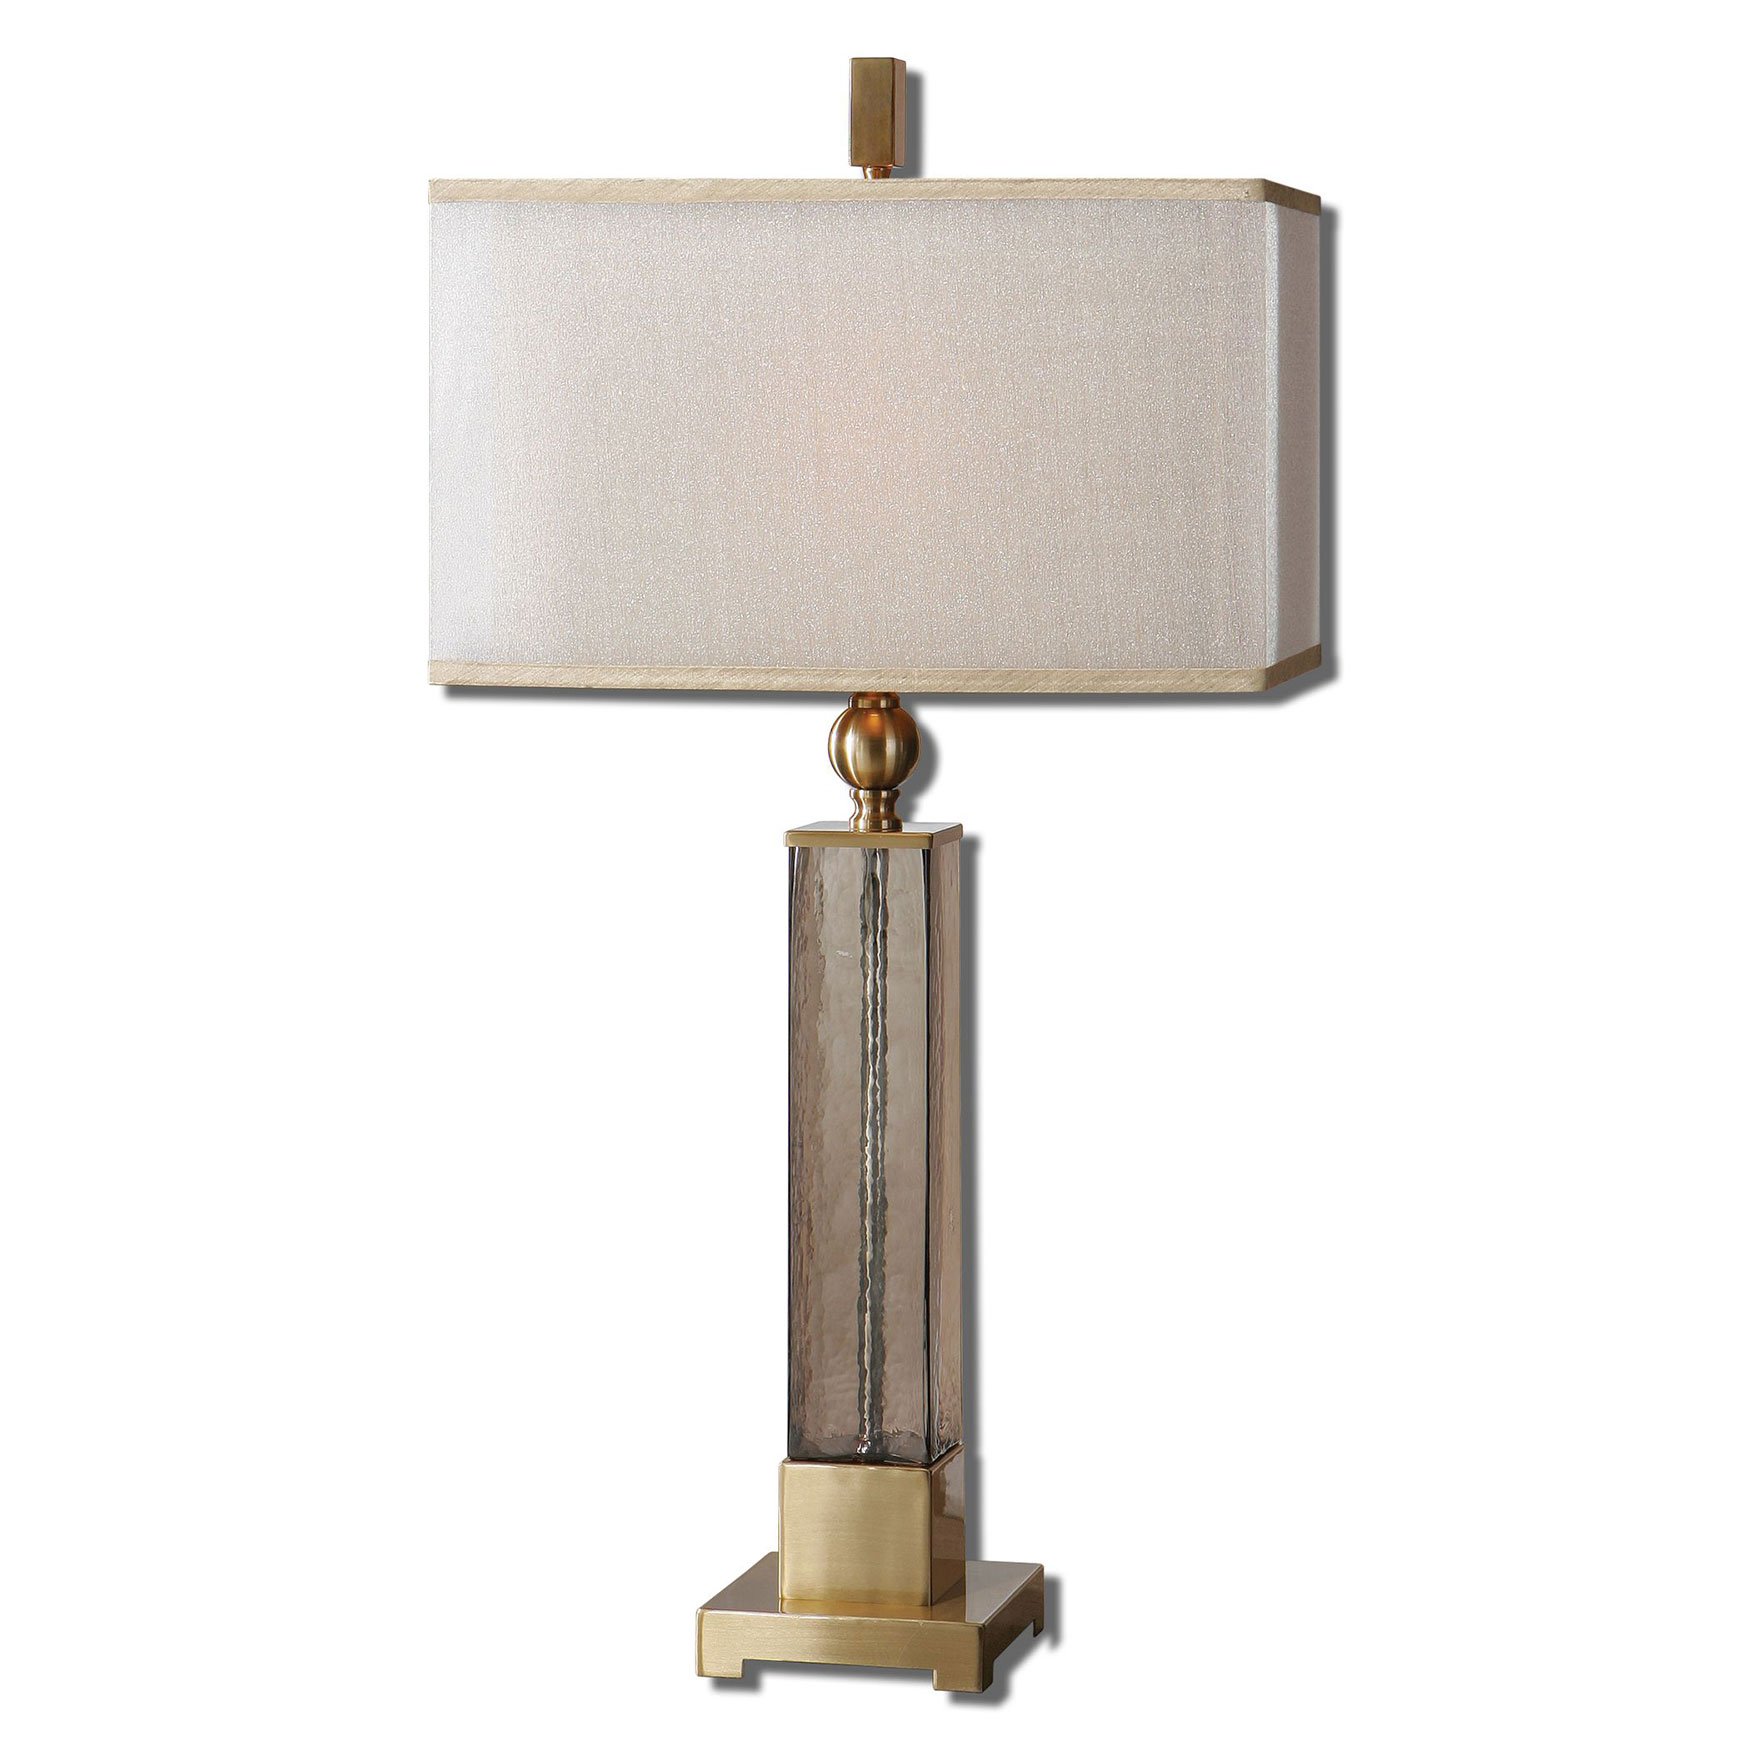 Caecilia Amber Glass Table Lamp, BRASS